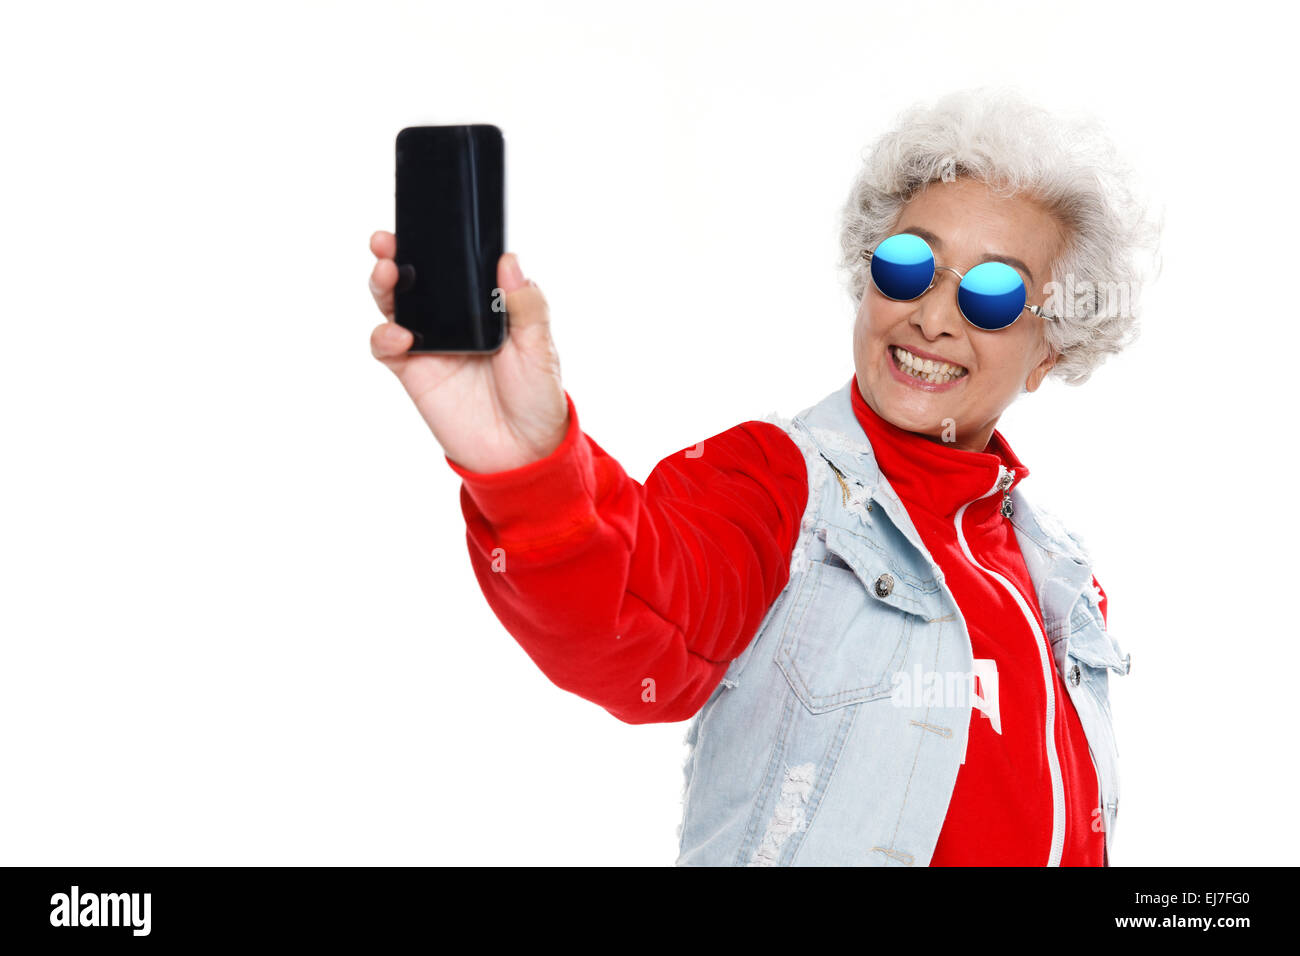 Fashion old people holding a mobile phone - Stock Image